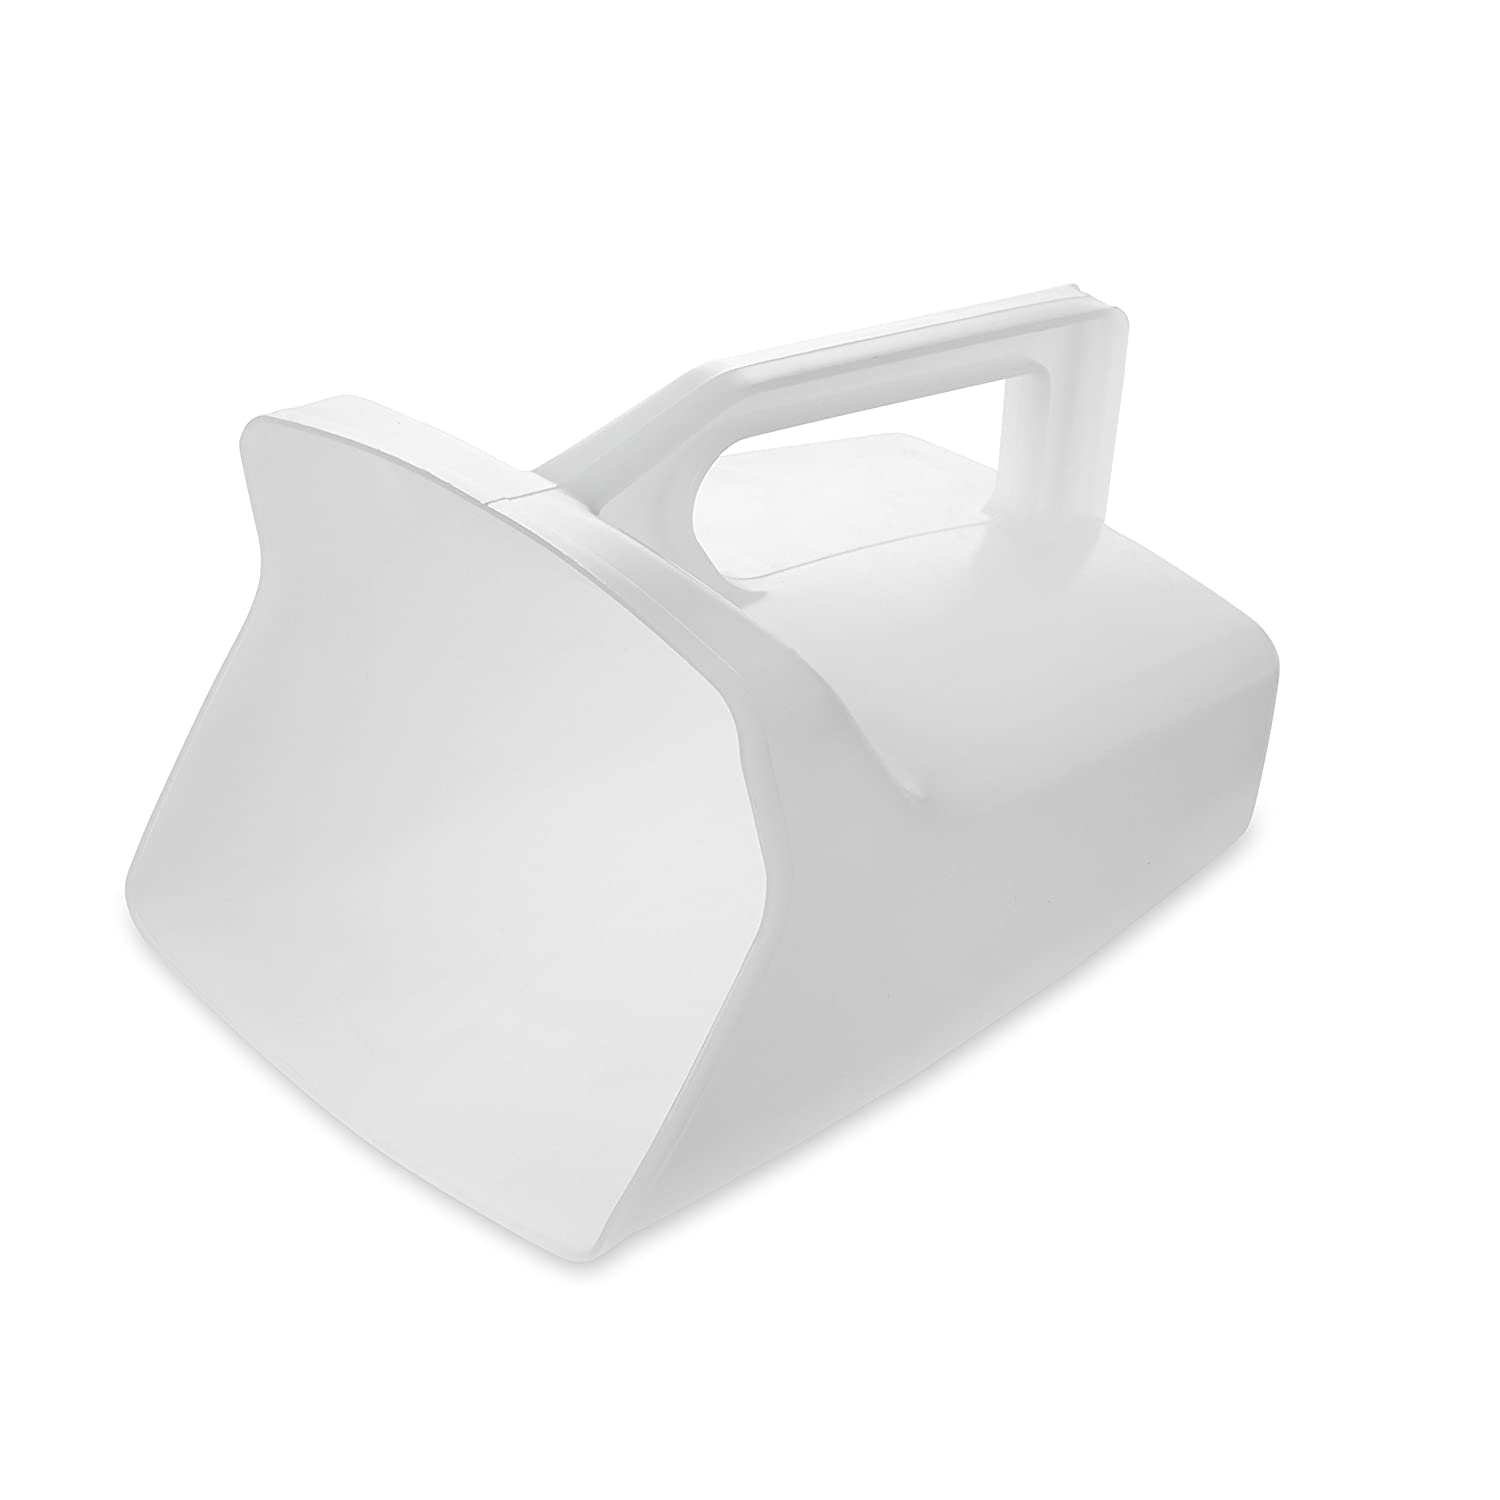 Rubbermaid Commercial Food Service Scoop, 64-Ounce, White, FG288500WHT